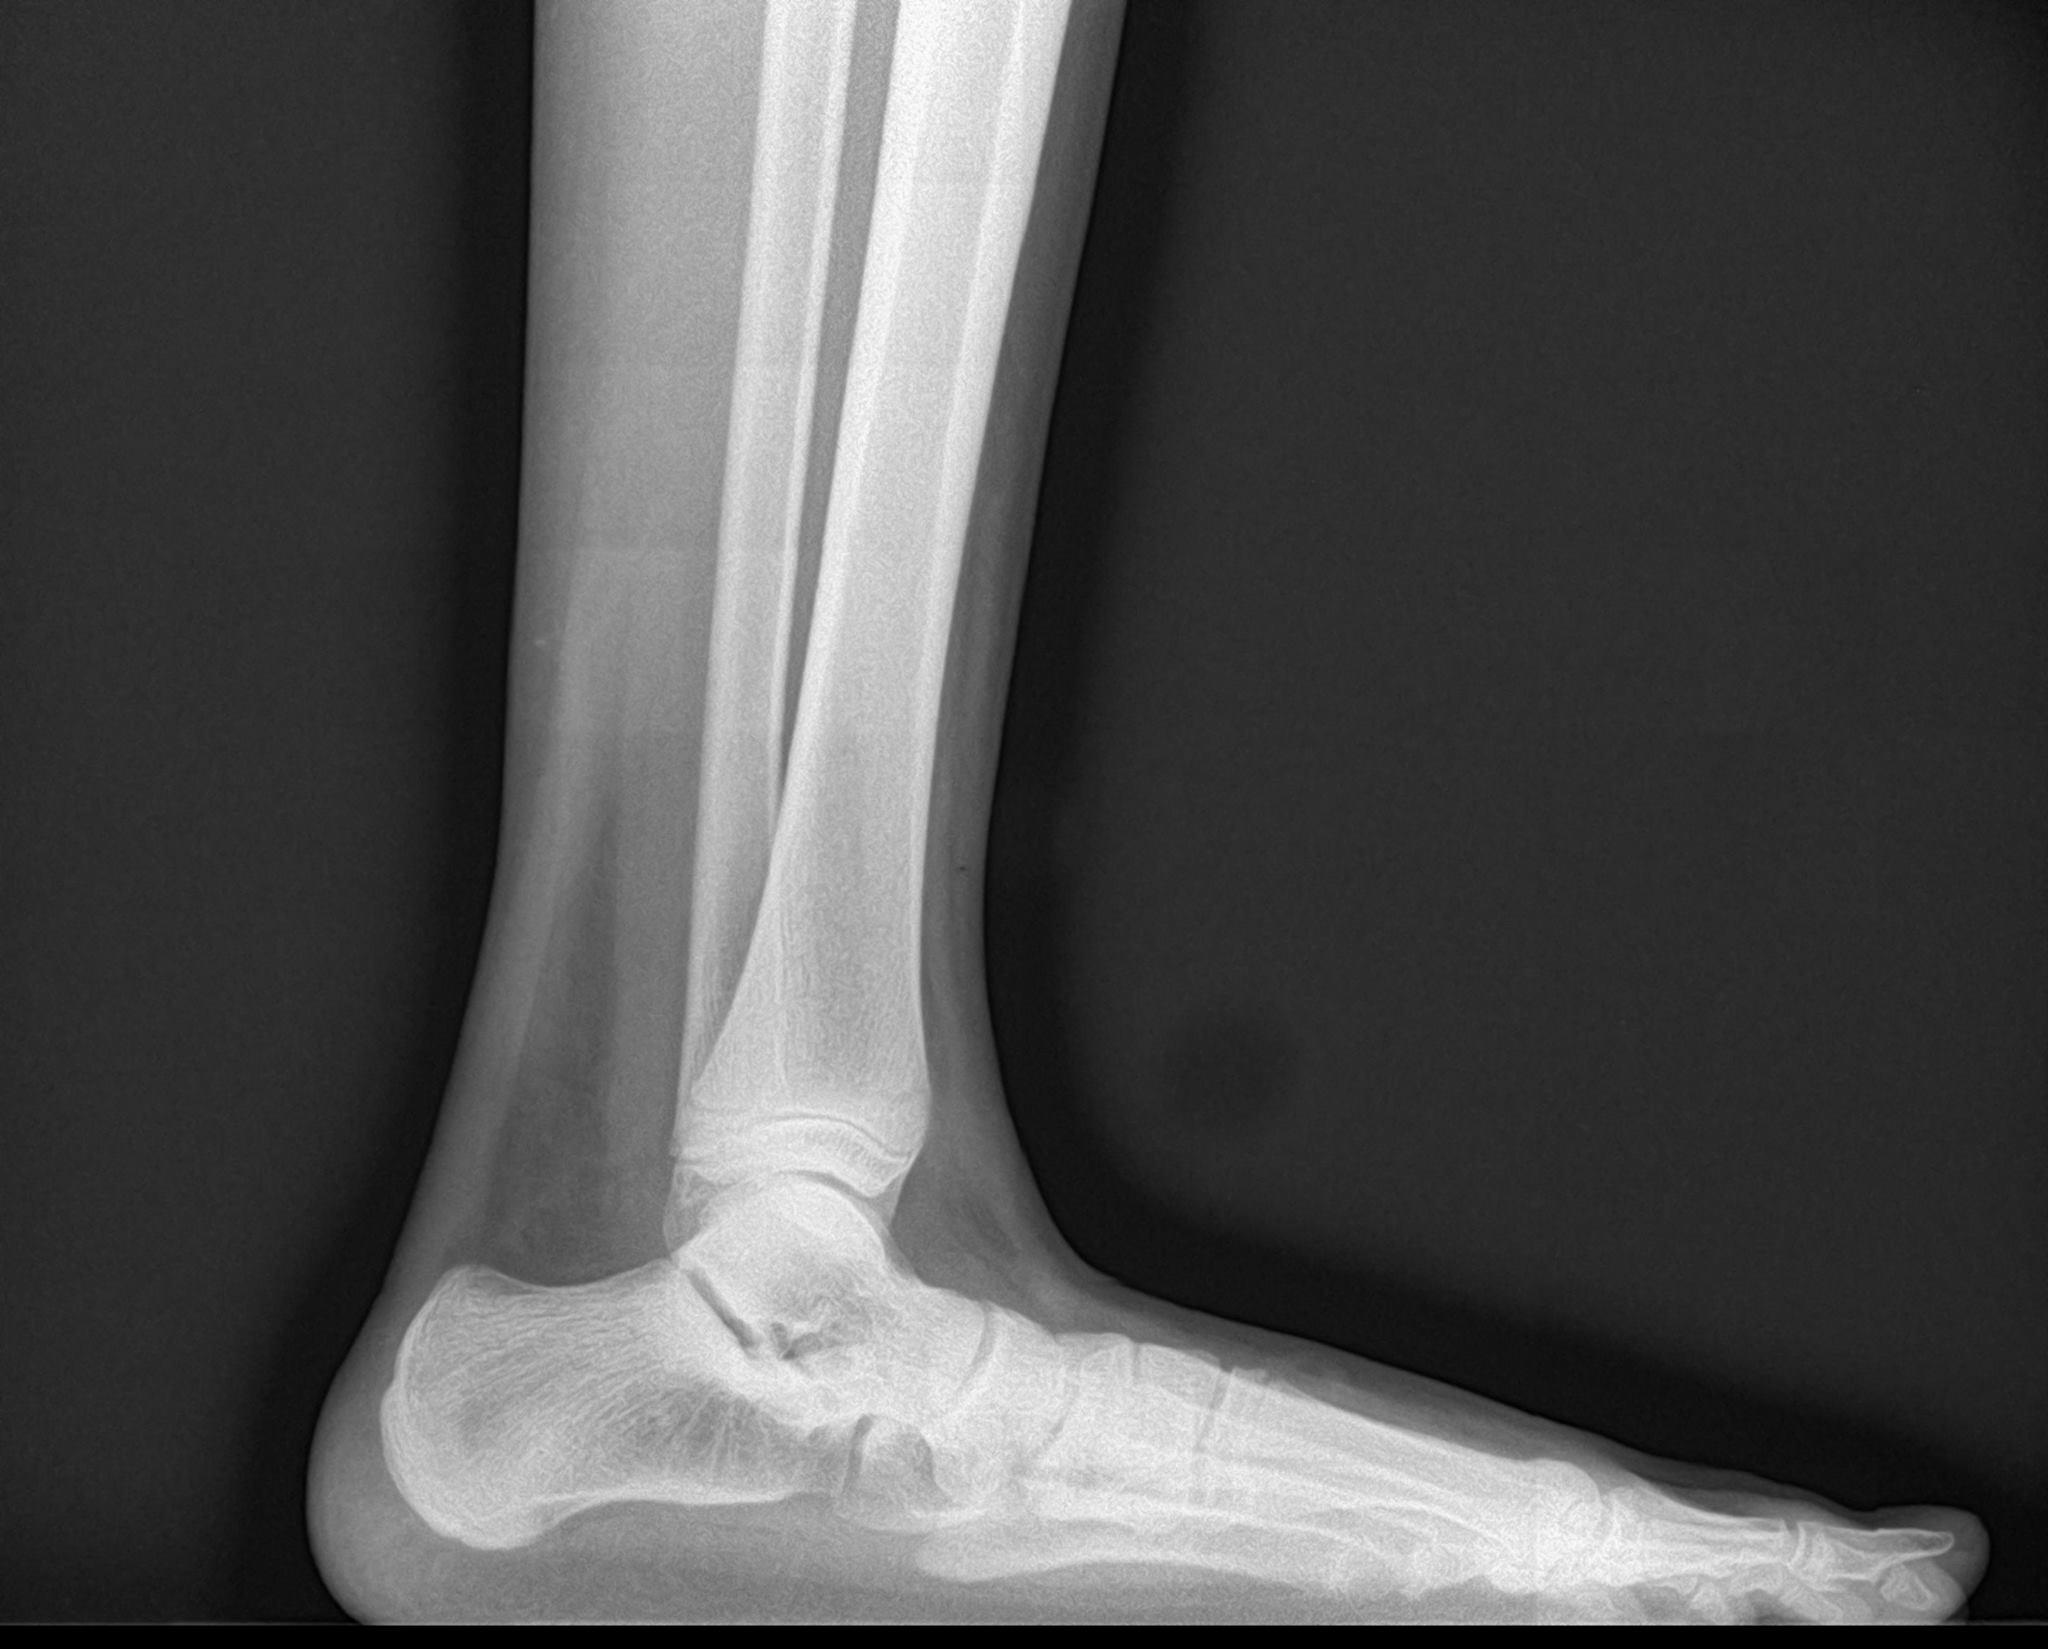 Elite Foot & Ankle Specialists image 4